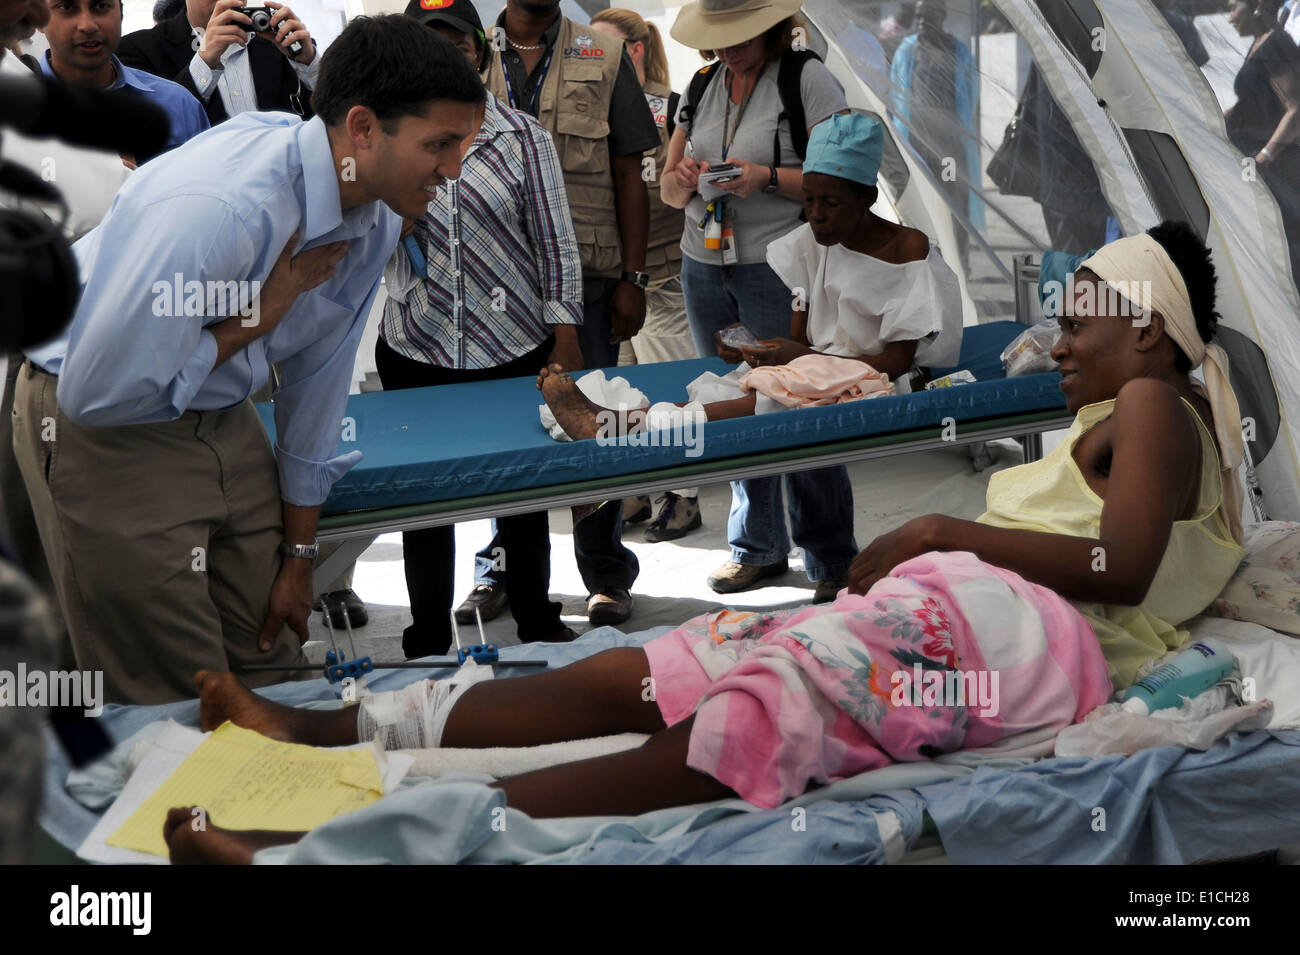 Dr. Rajiv Shah, the administrator of the U.S. Agency for International Development (USAID), visits a hospital in Port-au-Prince - Stock Image